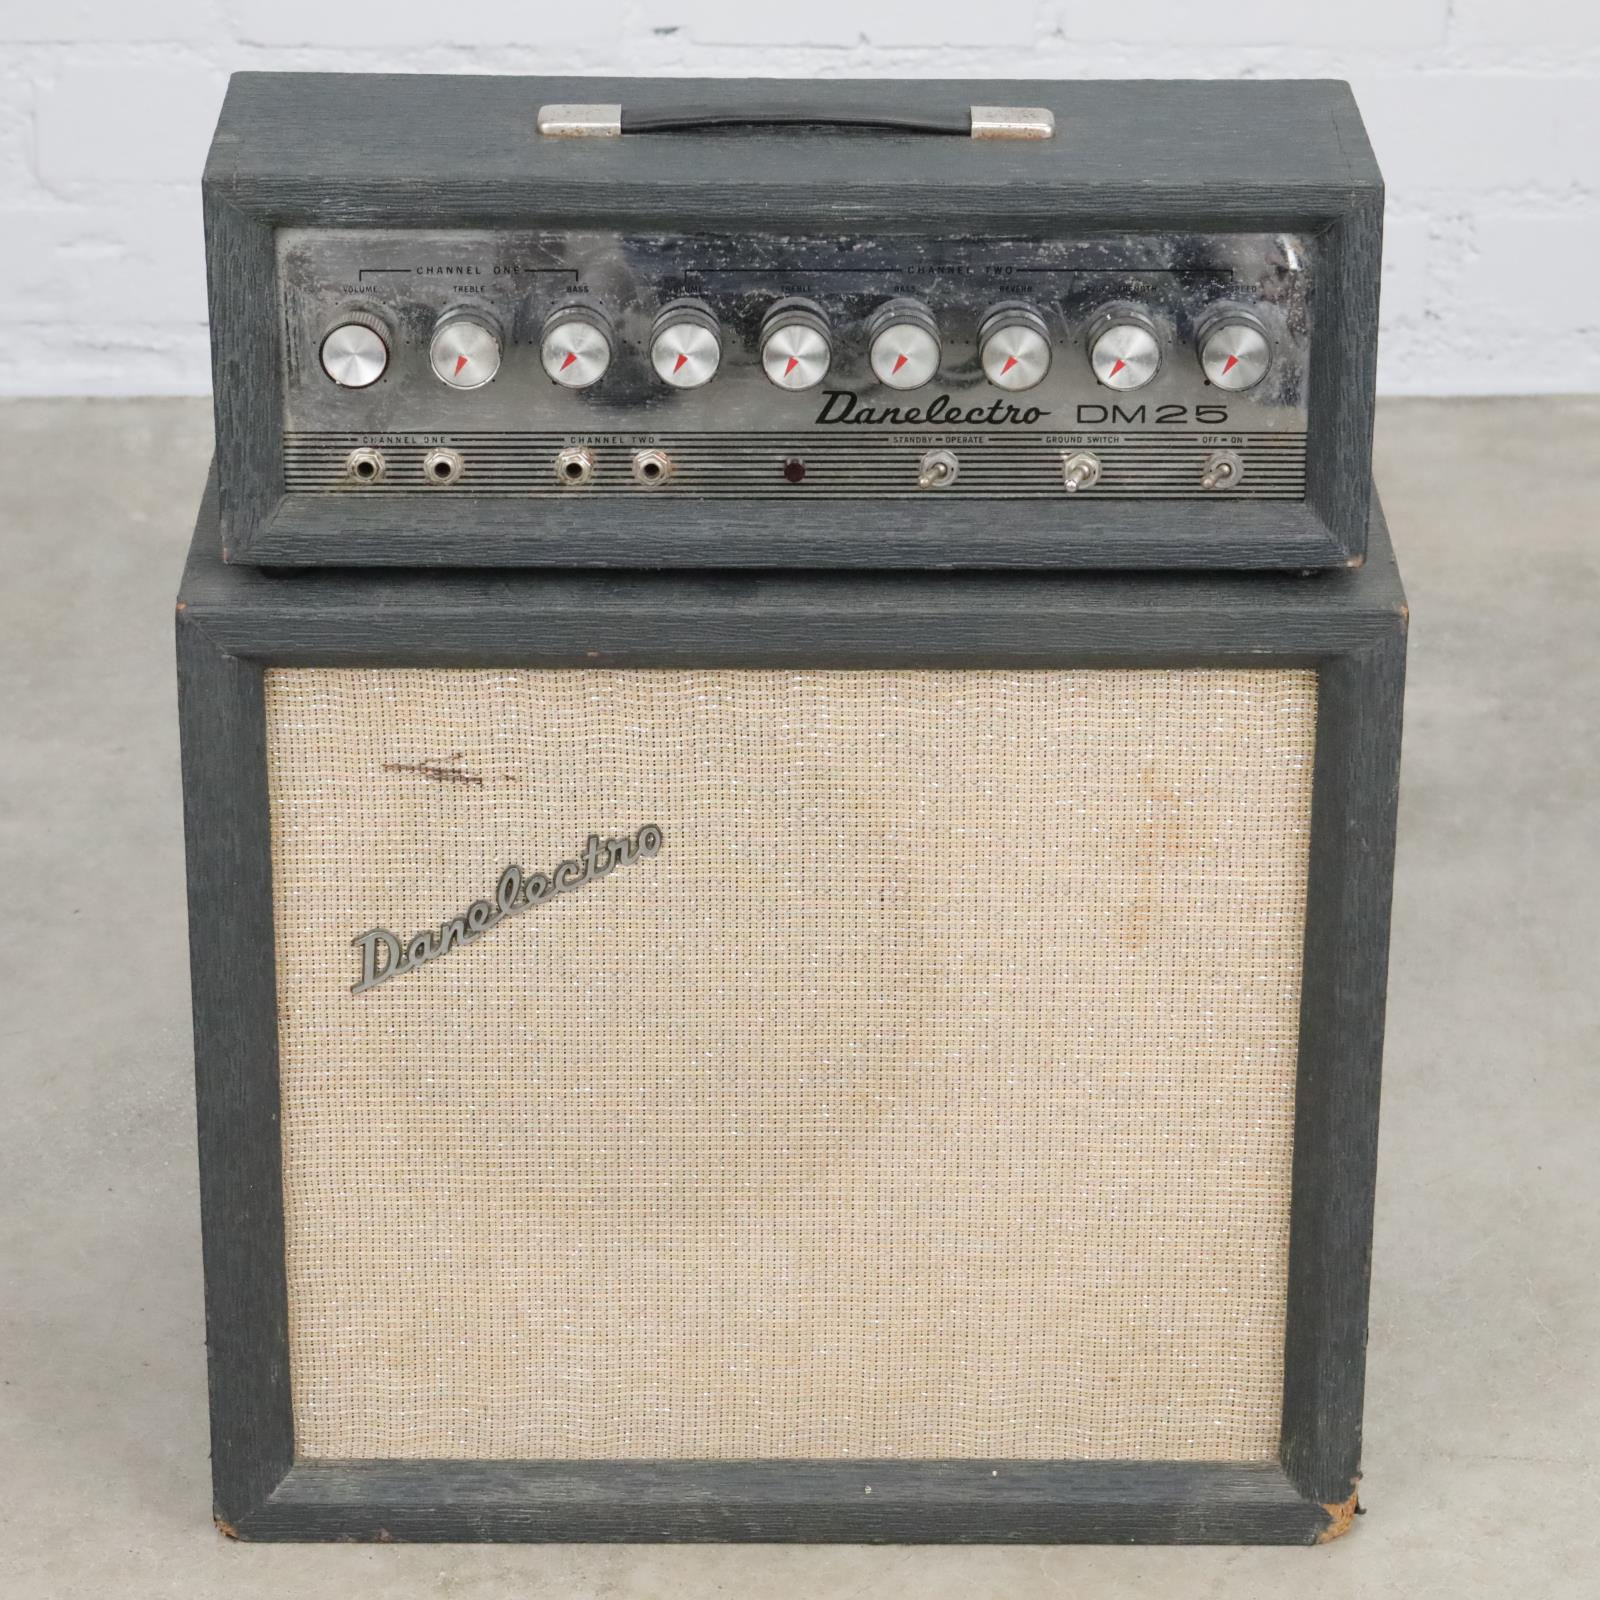 "Danelectro DM25 Guitar Tube Amplifier Amp & Cabinet 12"" Jensen Speaker #40333"